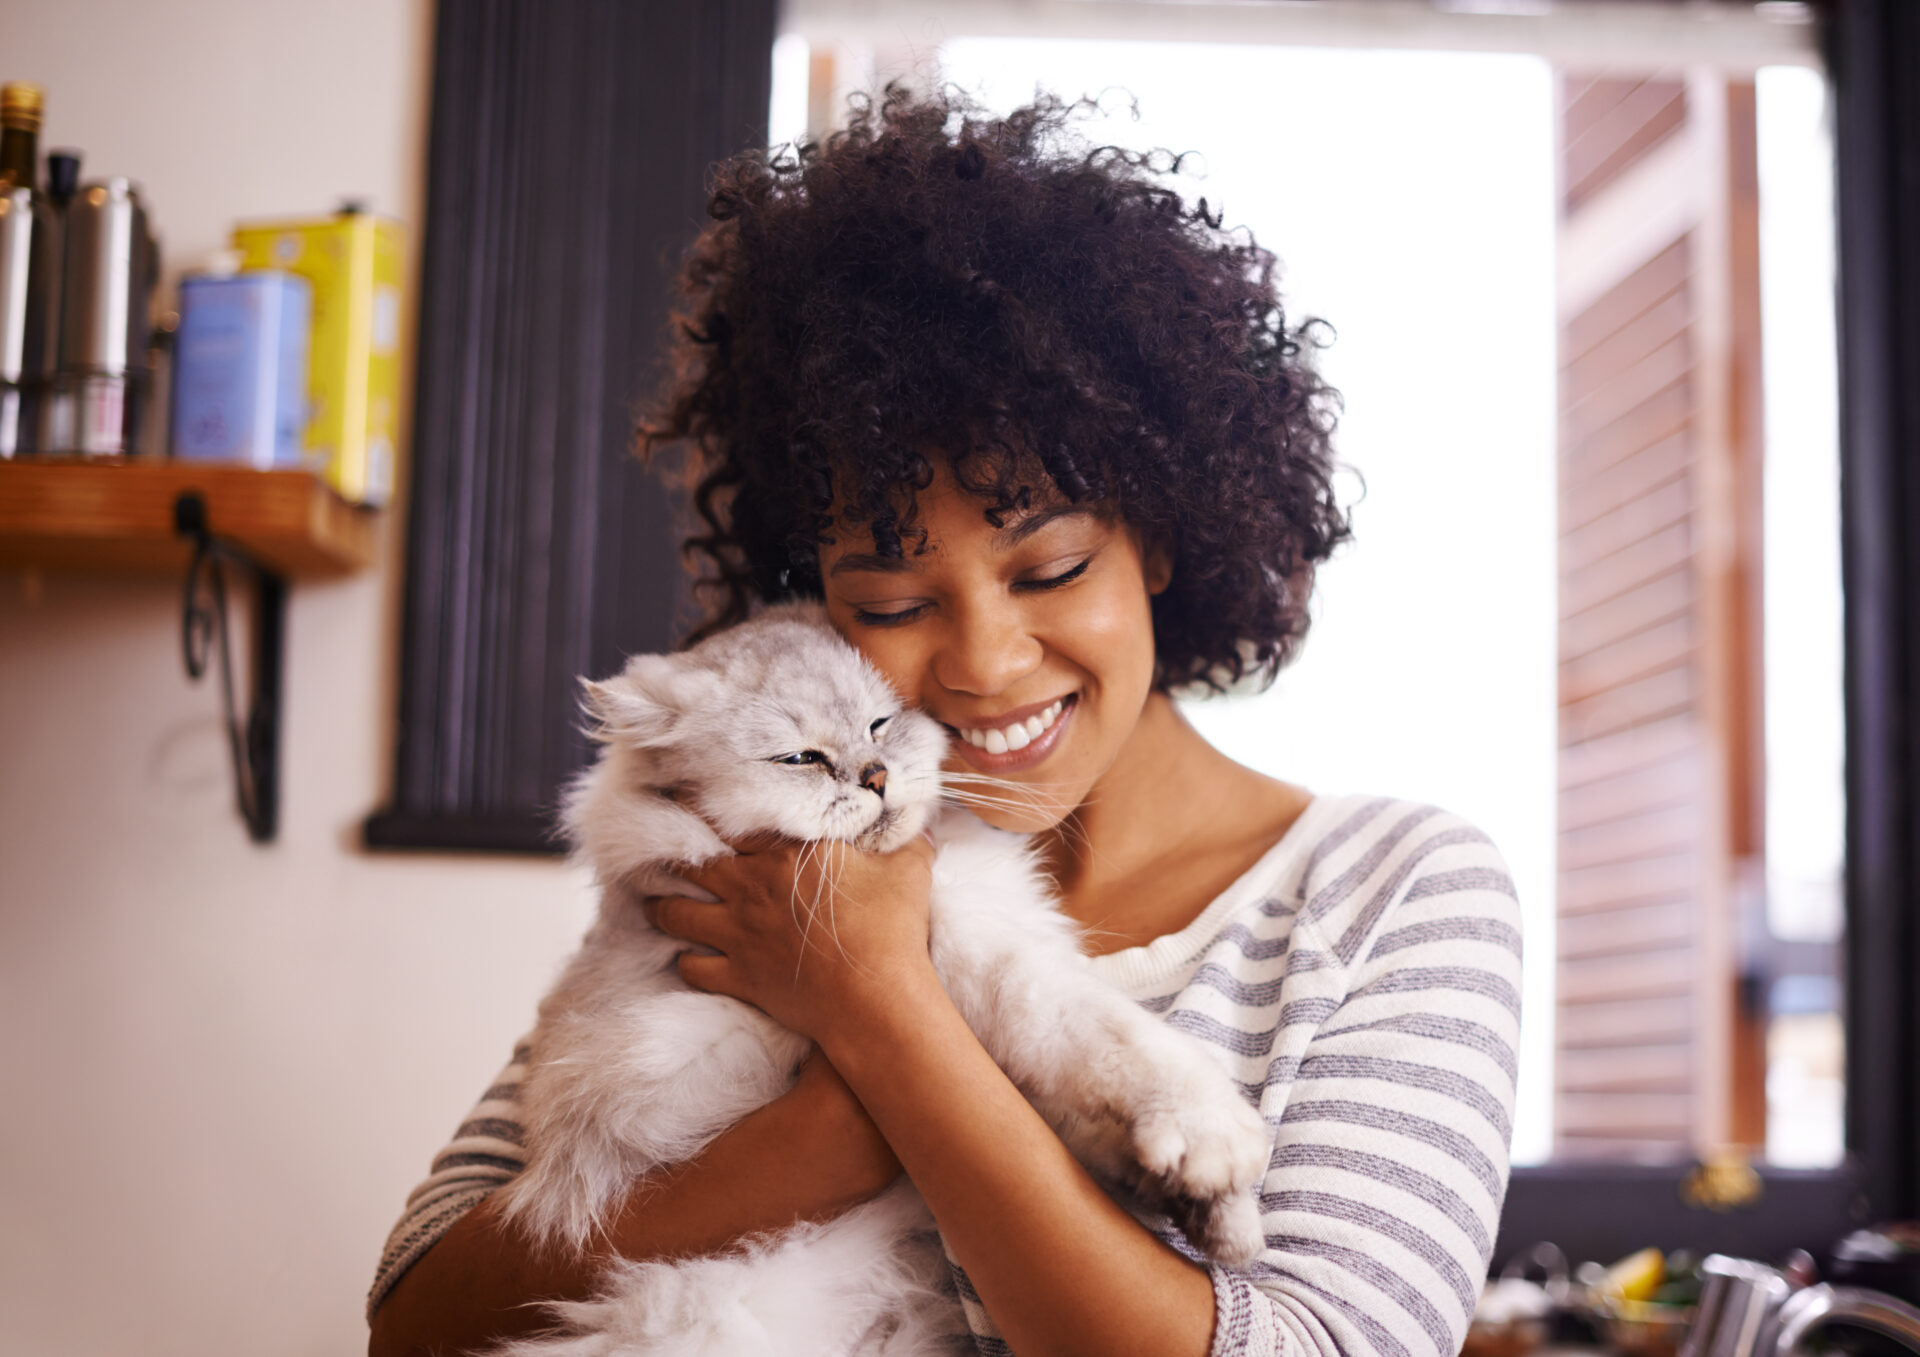 beautiful young woman showing love by enjoying a cuddle with her cat